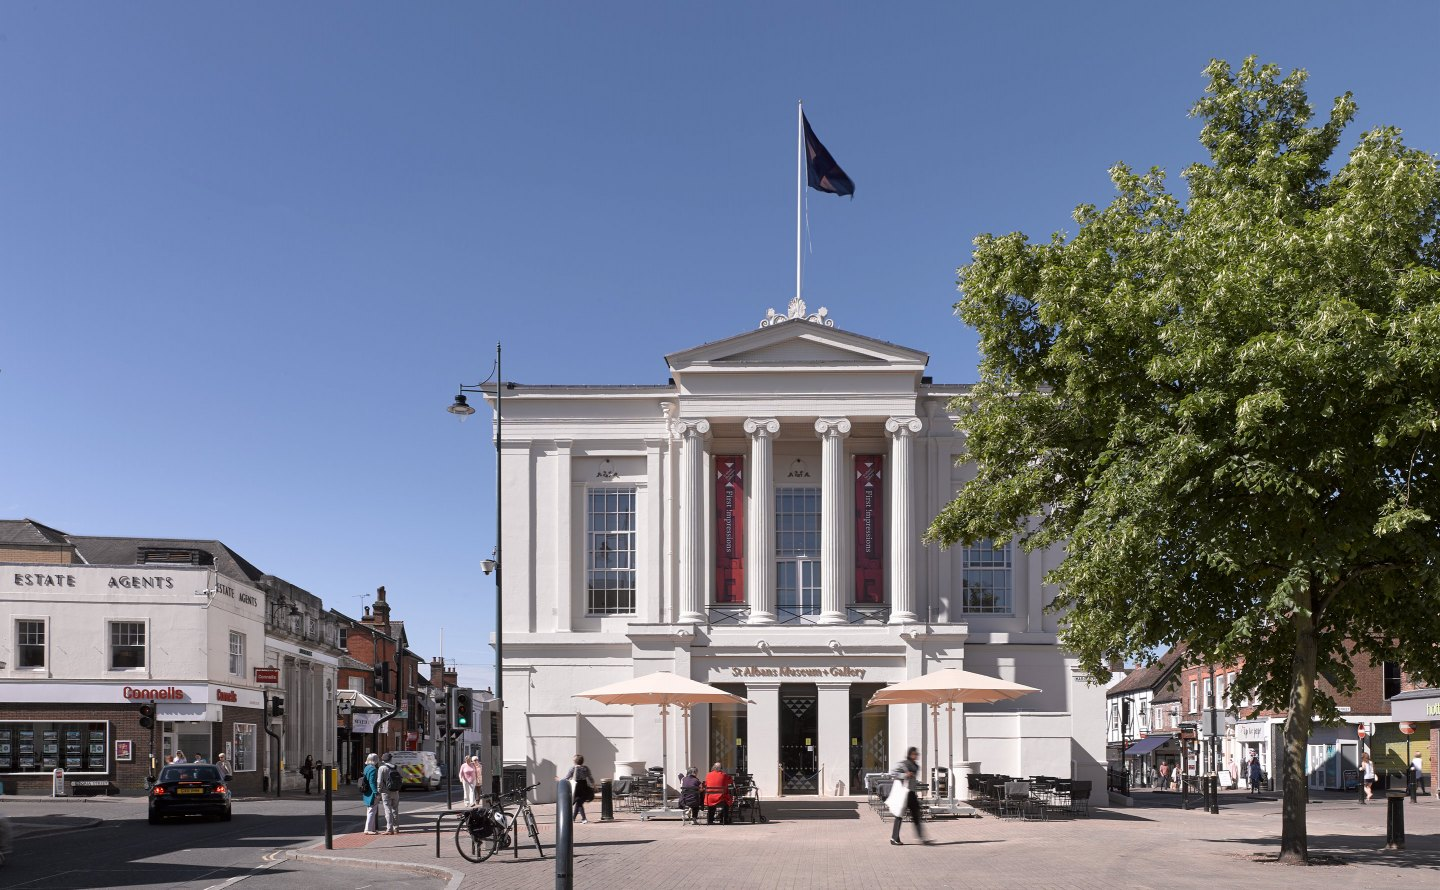 St Albans Museum & Art Gallery wins double at 2018 Hertfordshire Building Futures Awards